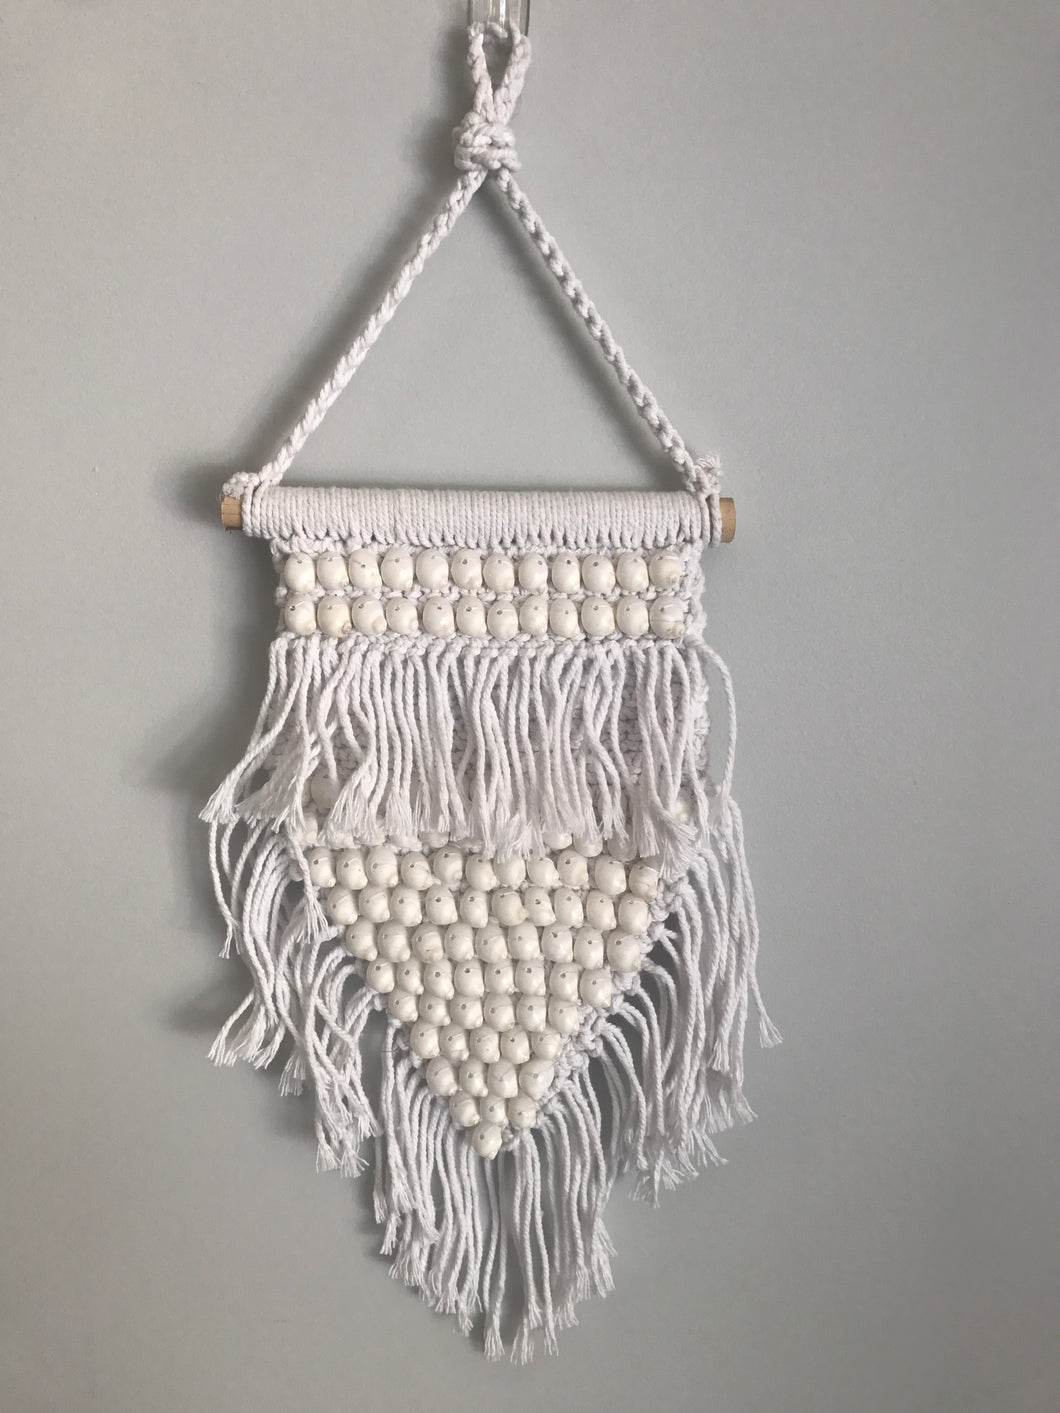 Mermaid Shell Macrame